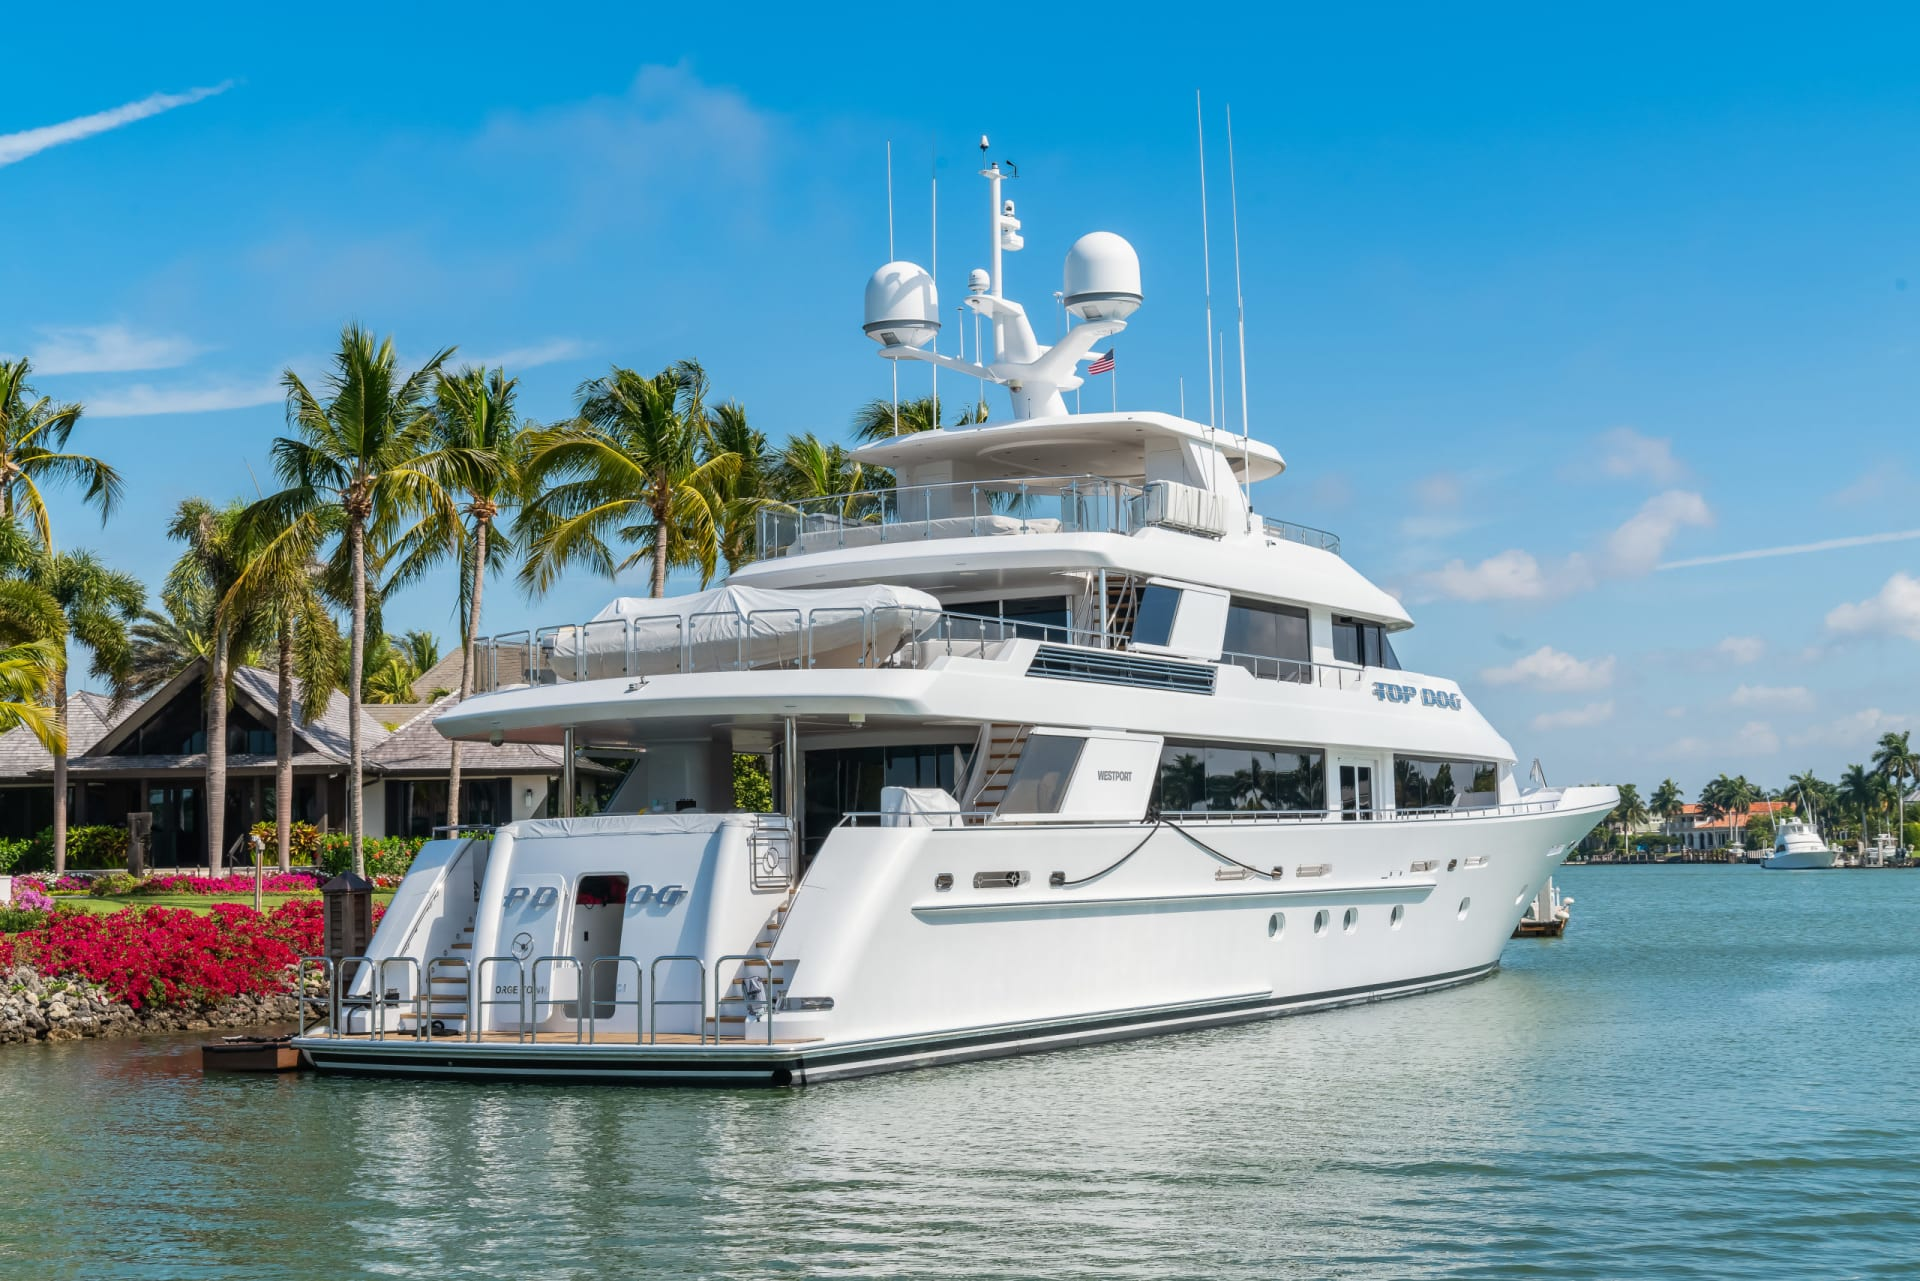 Yachting A Passion? video preview